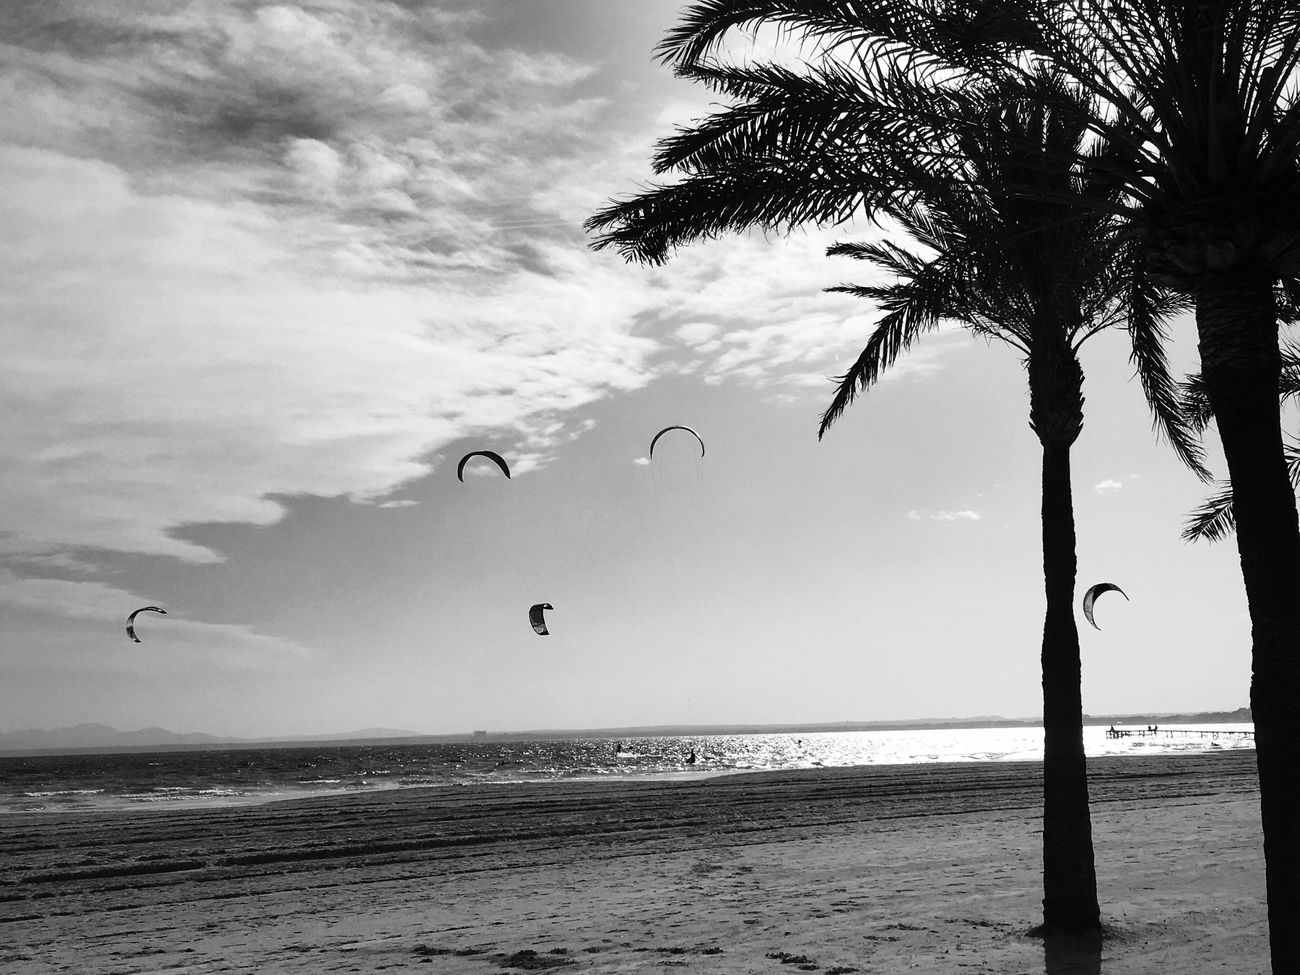 Sport Kitesurfing Kiteboarding Kite Kites Outdoor Activity Outdoorlife Beach Beachphotography Palmtrees Activity Activities. Fitness Healthy Lifestyle